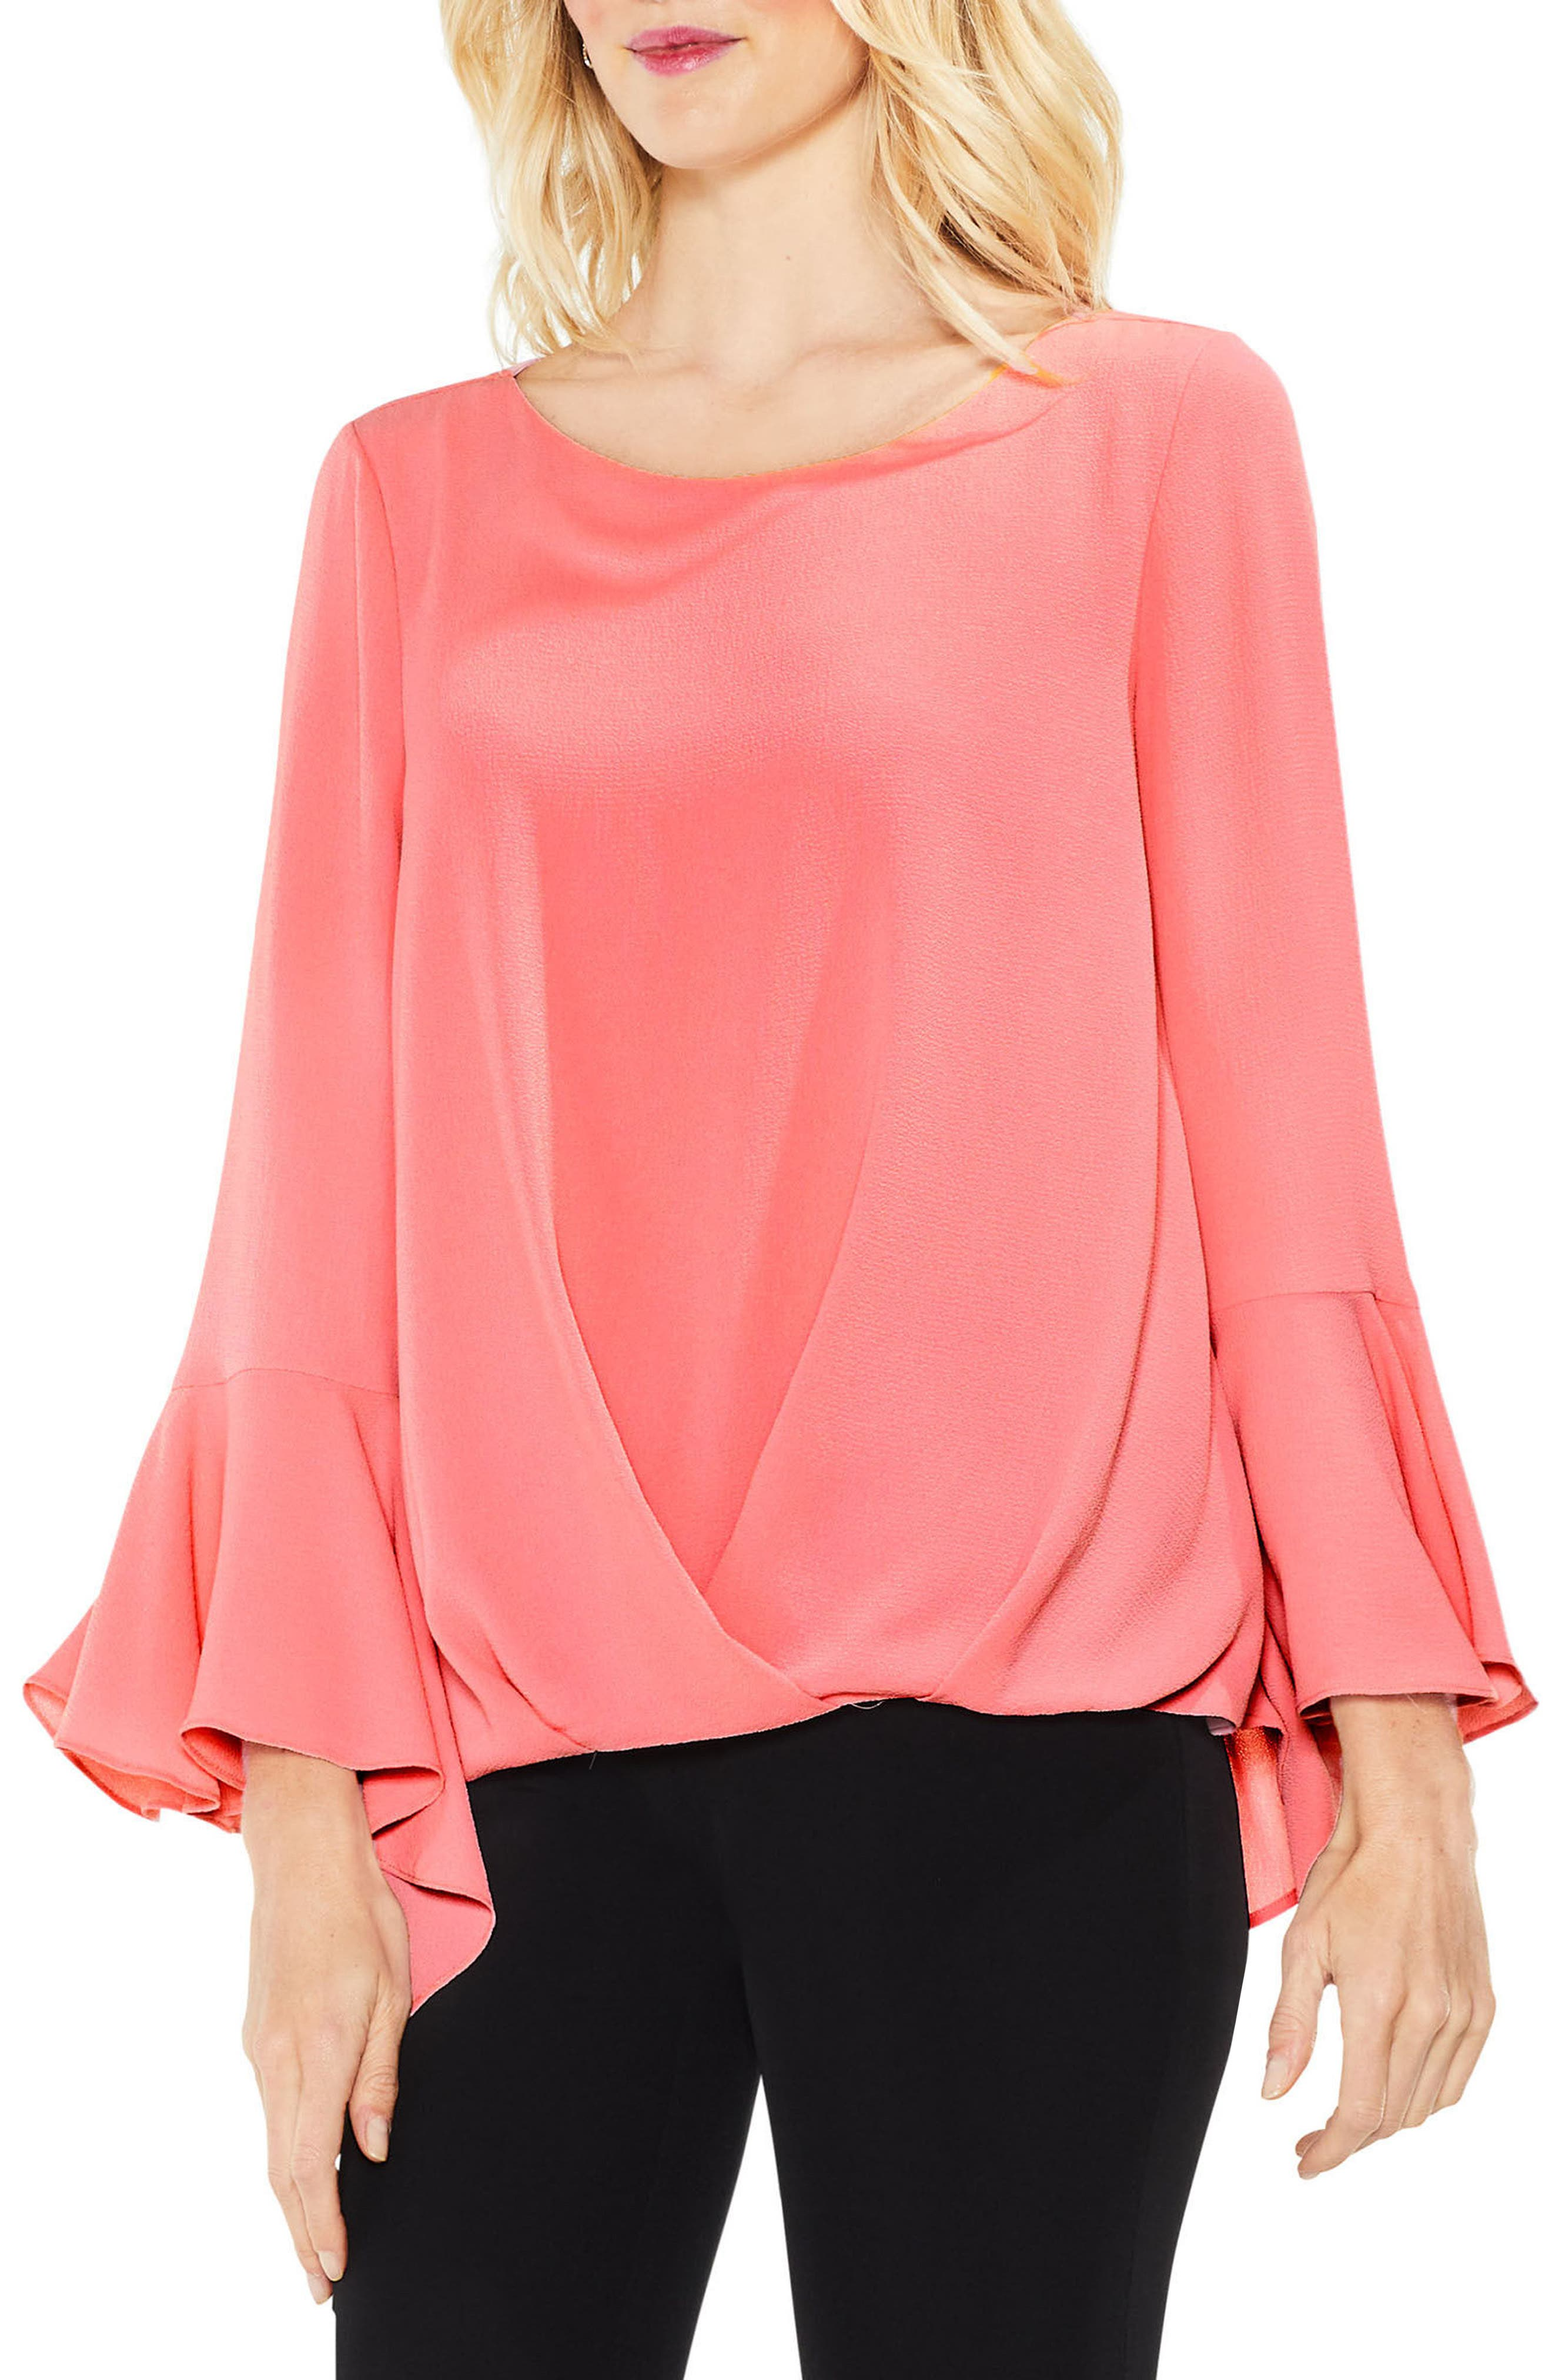 Bell Cuff Foldover Blouse,                             Main thumbnail 4, color,